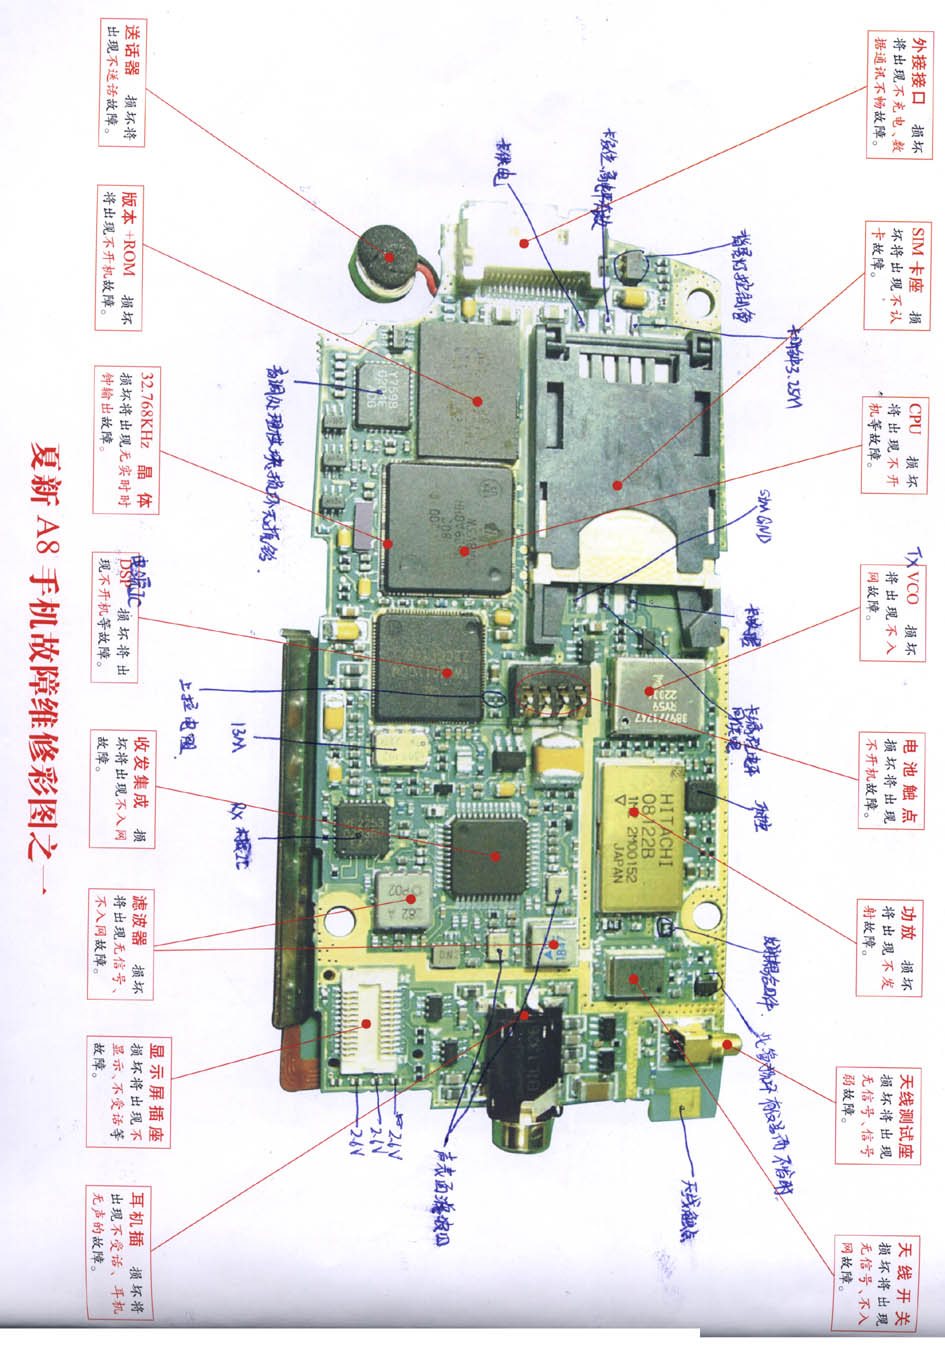 hight resolution of amoisonic a8 cell phone fault maintaining diagram 1 cell phone battery diagram cell phone diagram